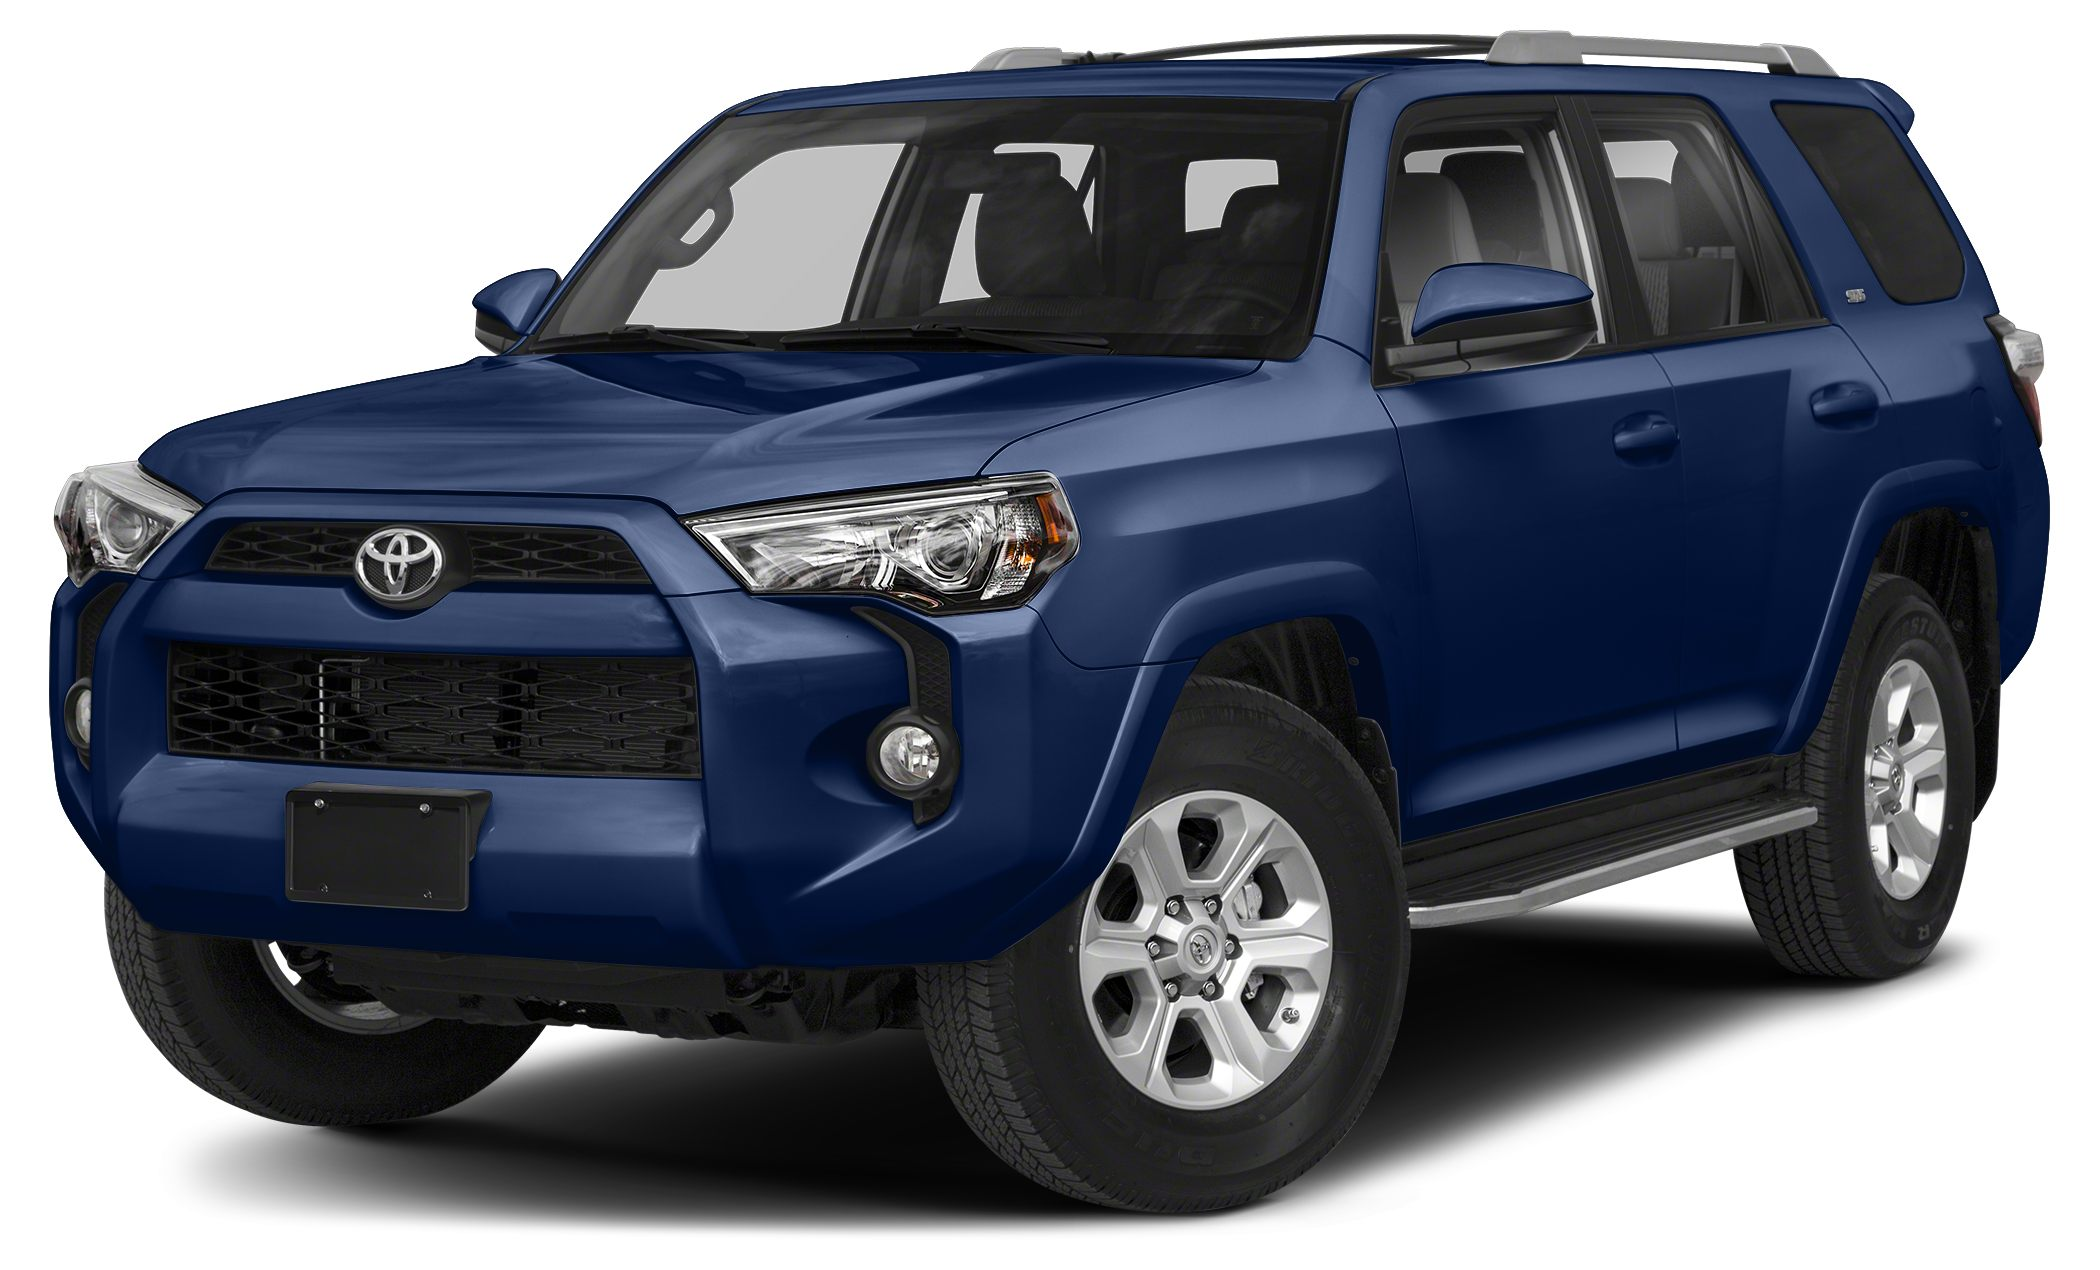 2017 Toyota 4Runner SR5 Westboro Toyota is proud to present HASSLE FREE BUYING EXPERIENCE with upf